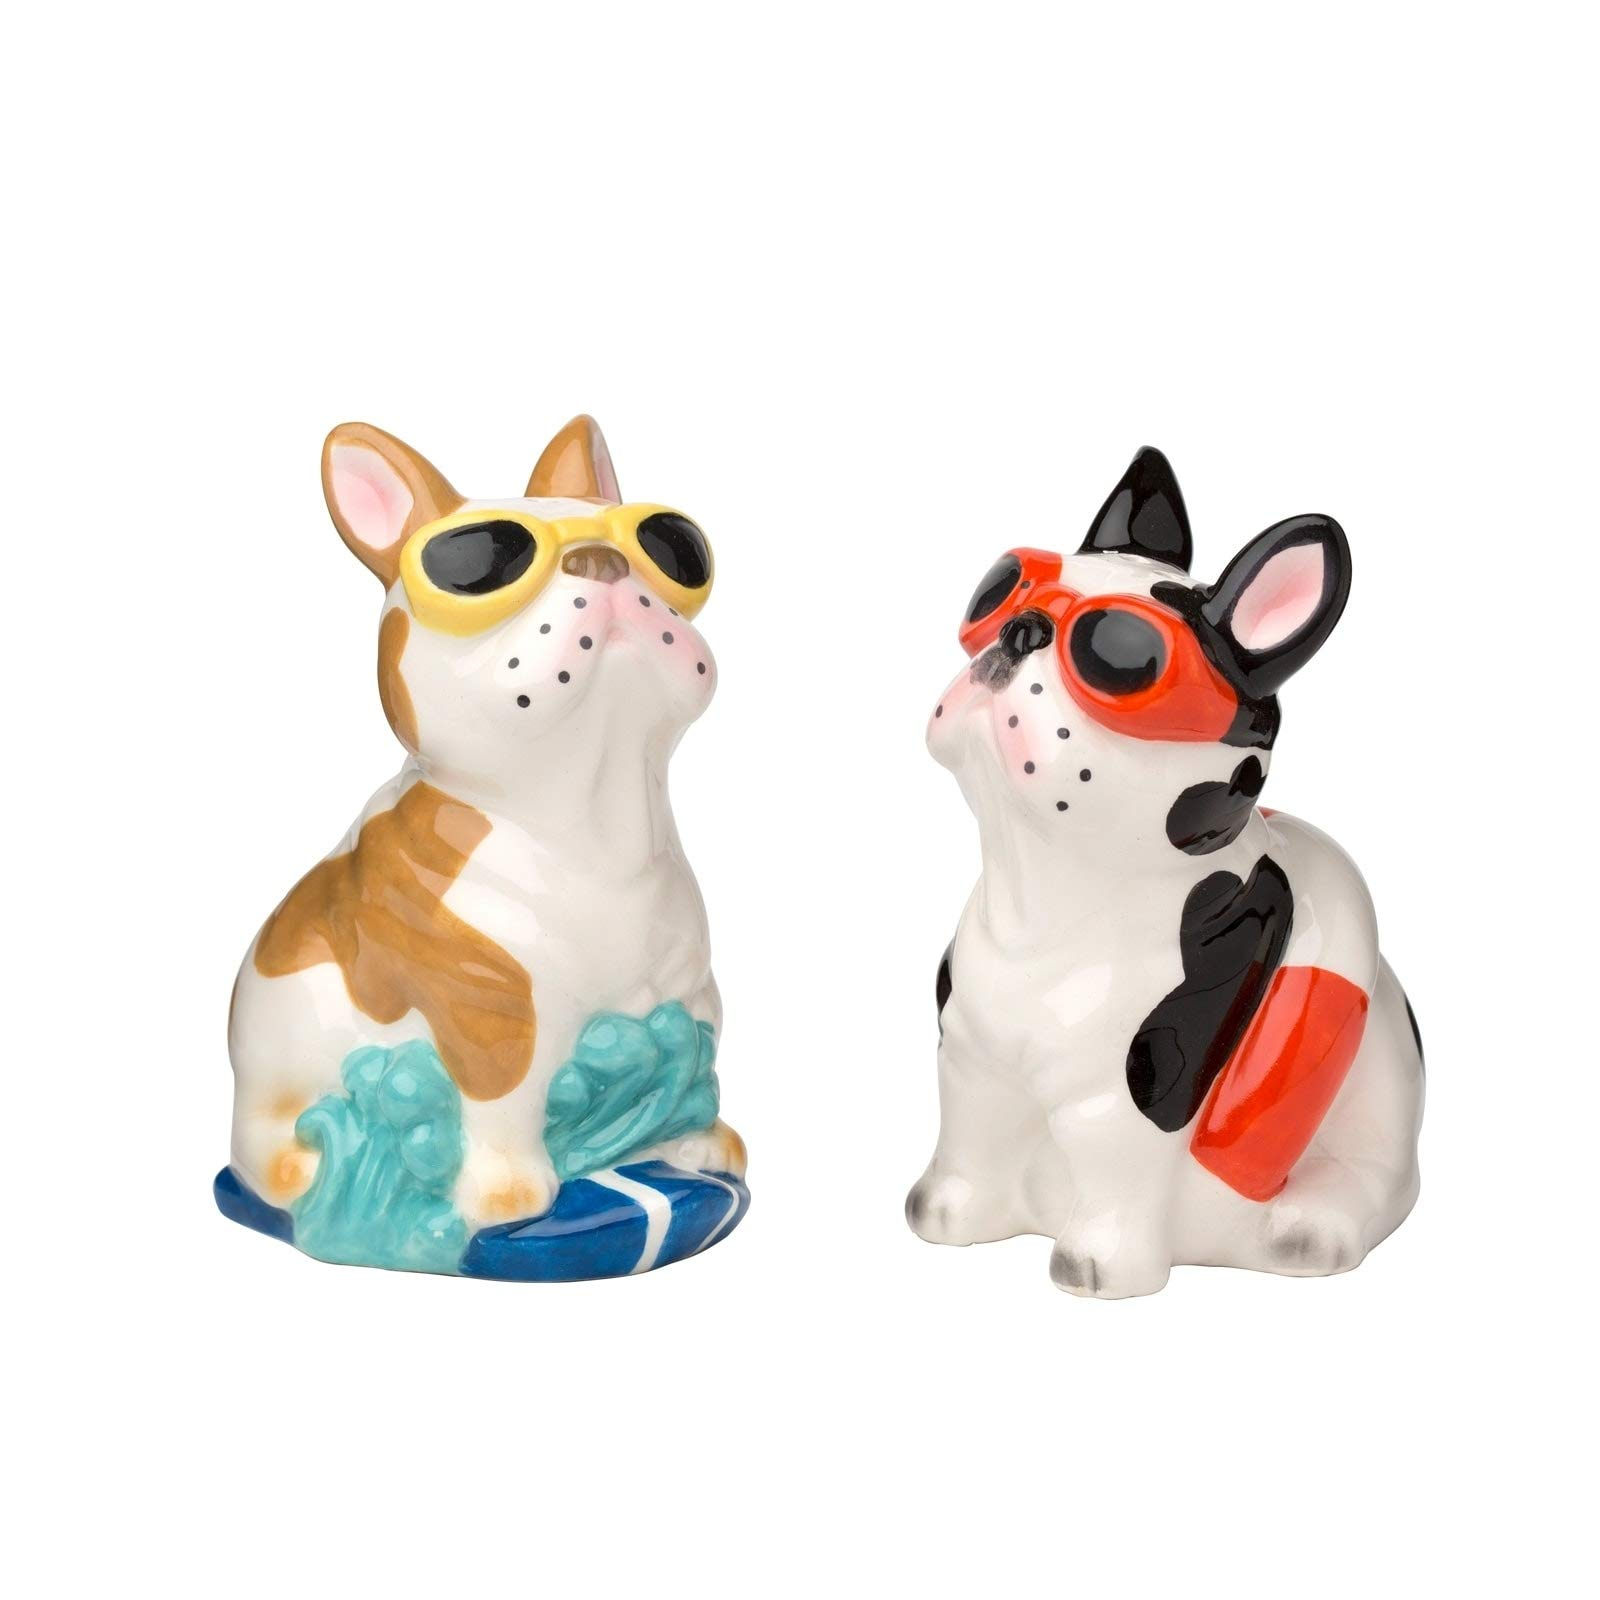 Frenchies Salt Pepper Shakers 3 Oz Multi Color Ceramic 2 Piece by Unknown